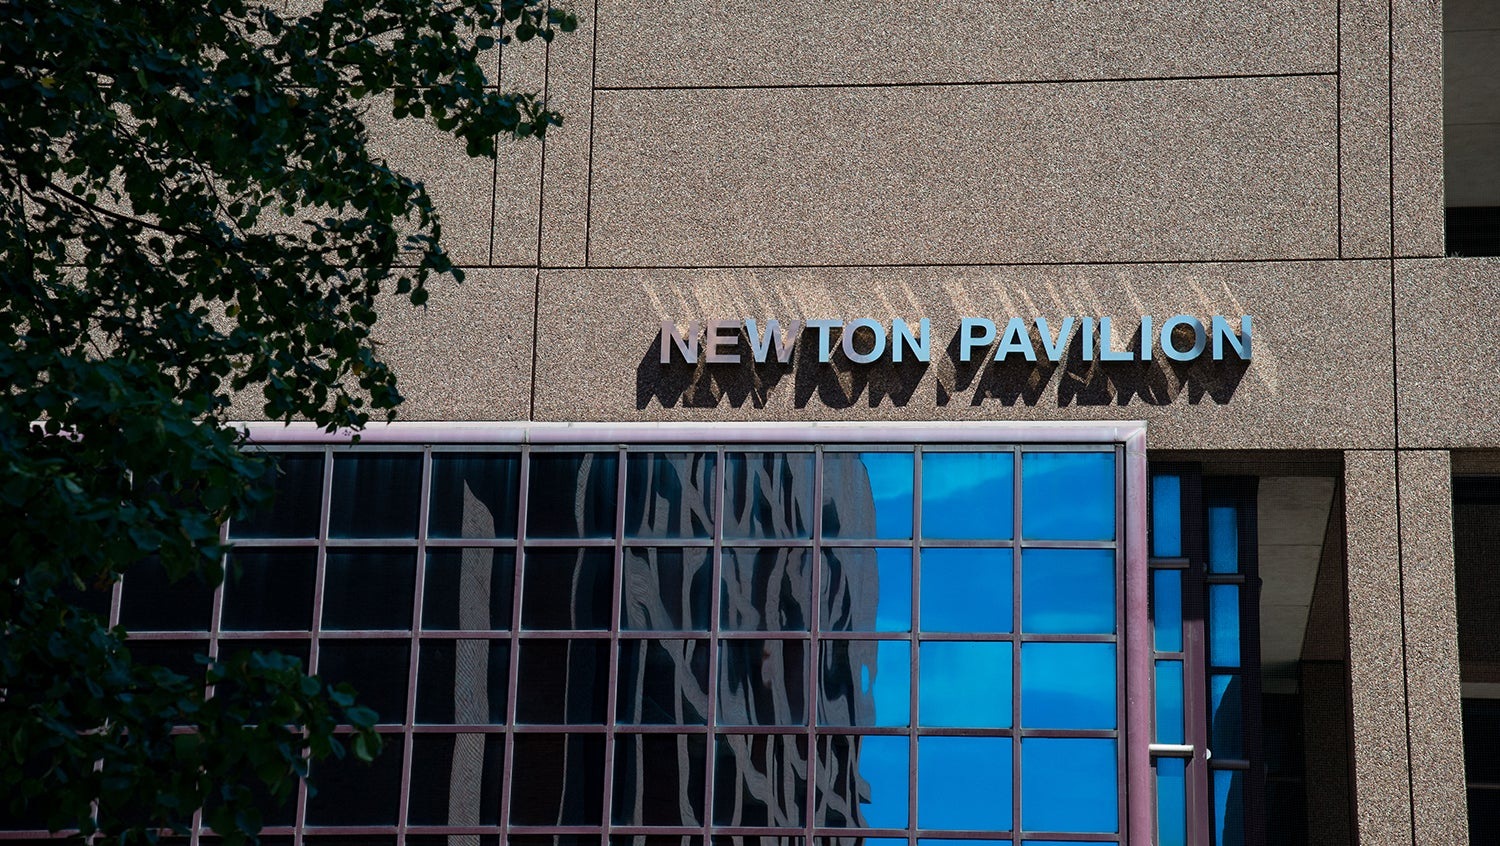 face of the East Newton Pavilion building